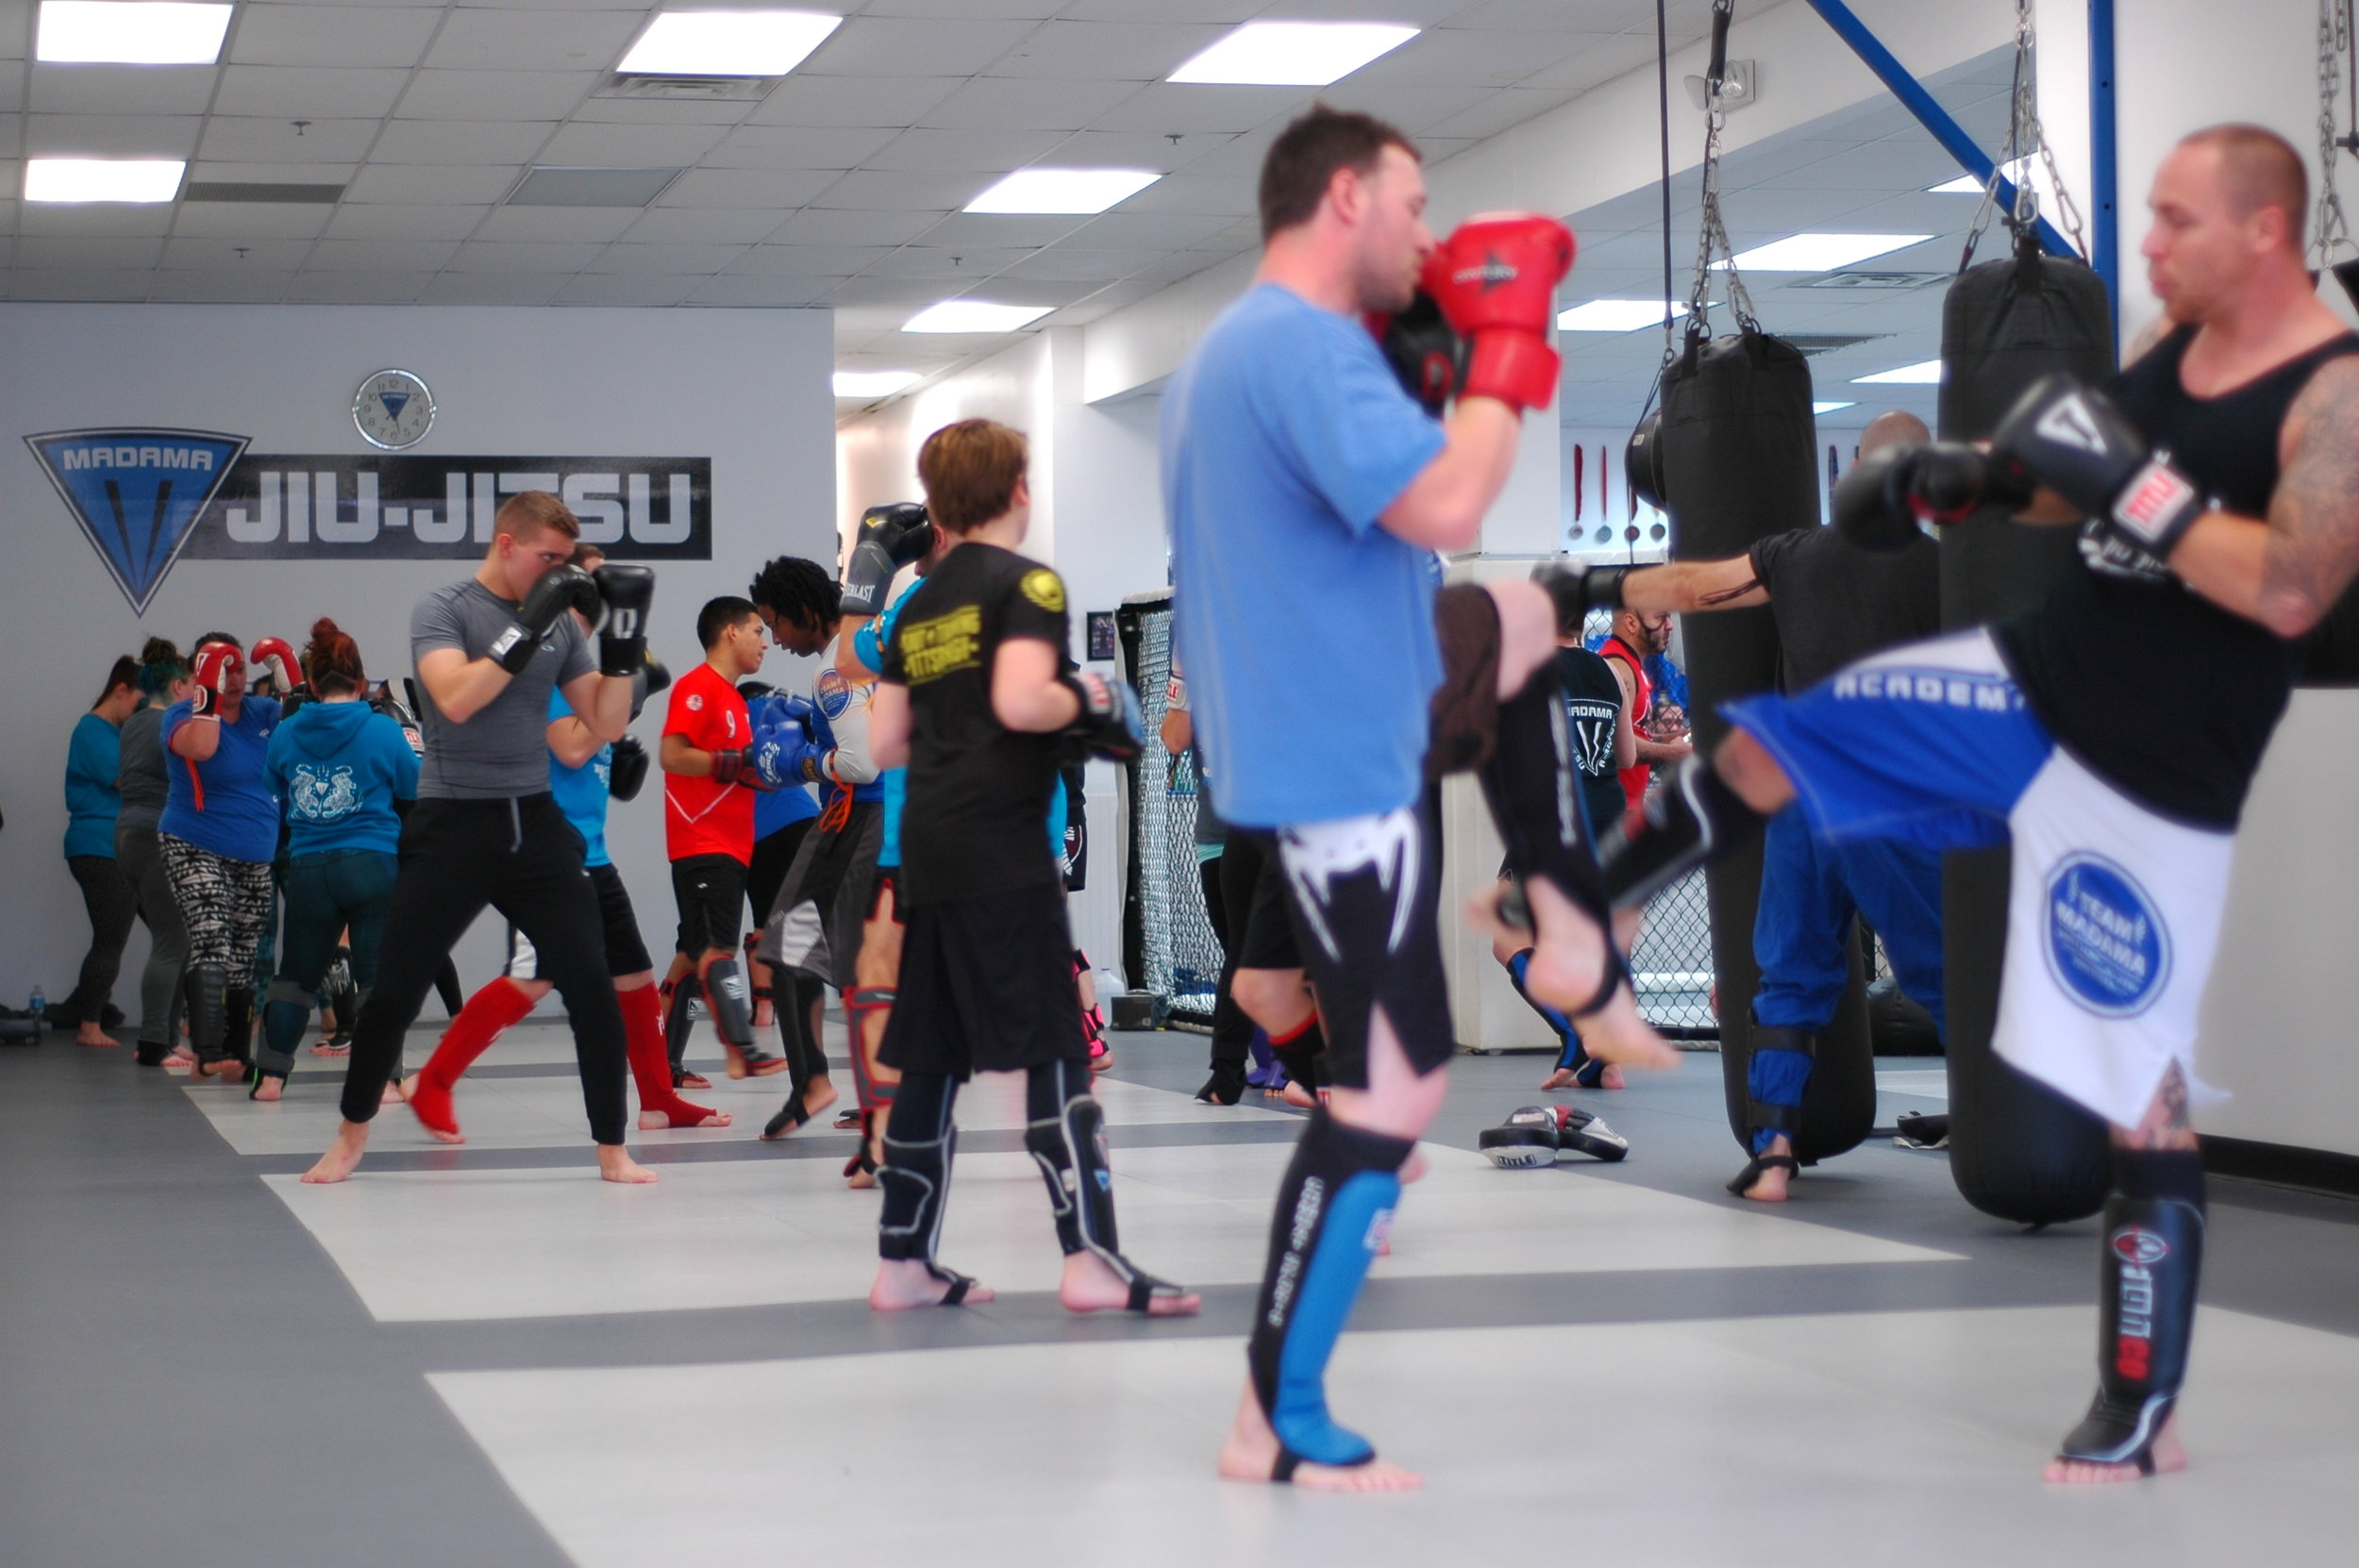 Learn Self-Defense & Get in Shape   Kickboxing    Free Trial Class